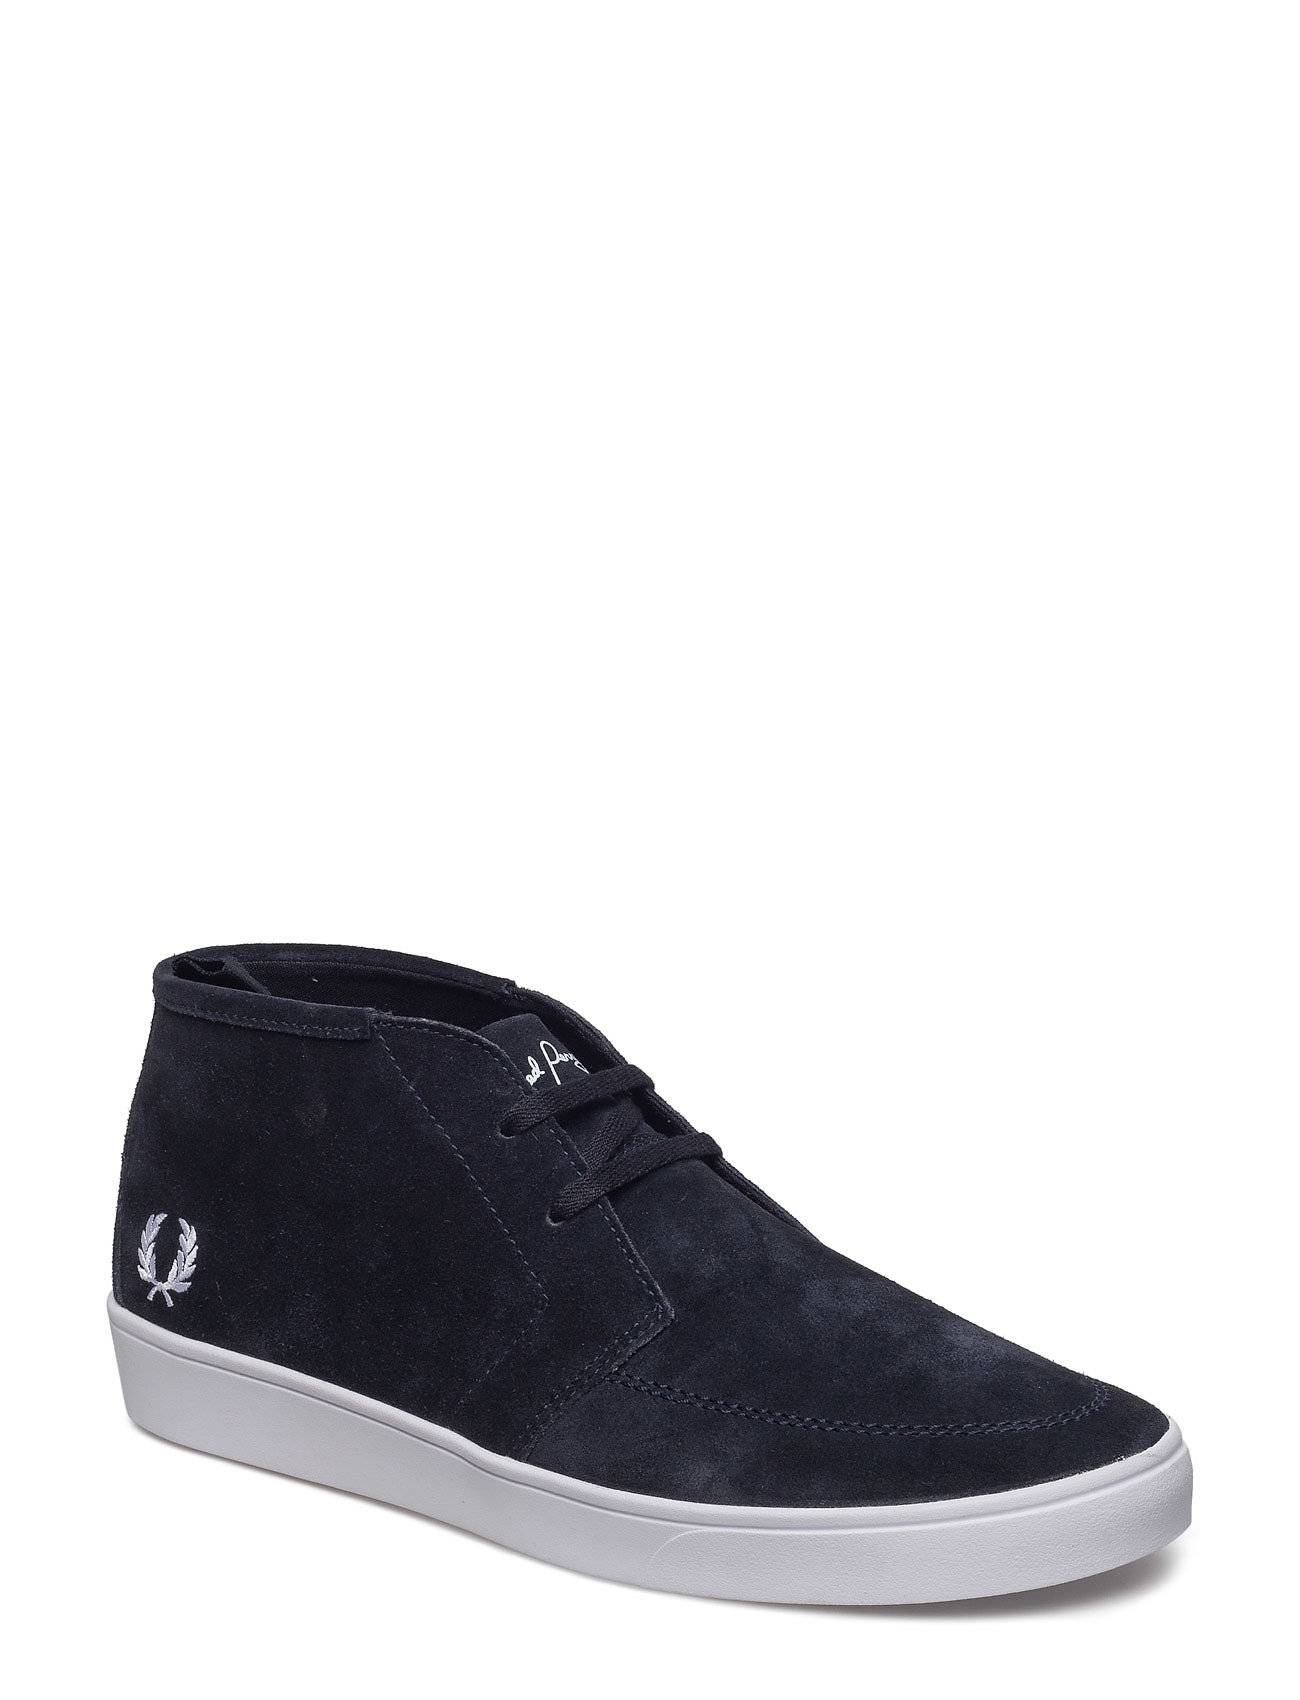 Fred Perry Shields Mid Suede